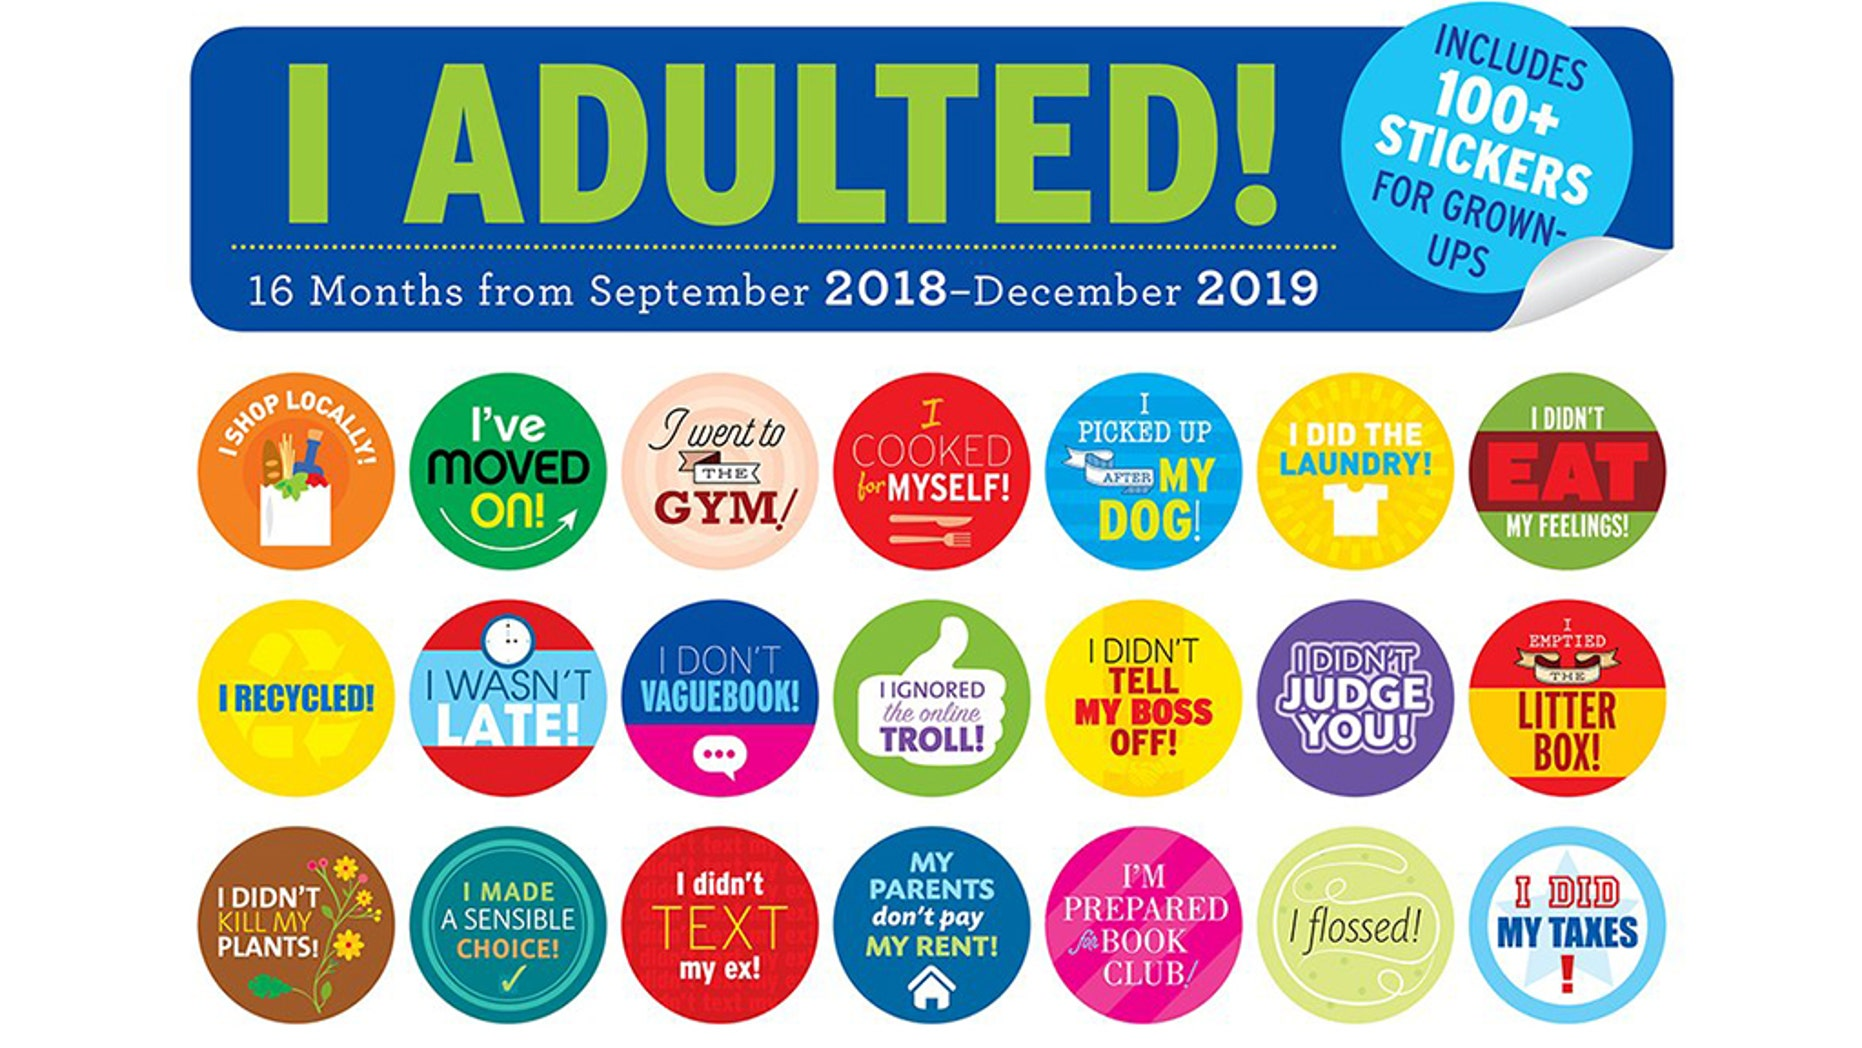 """""""I Adulted!""""is a 16-month calendar-slash-sticker book, available for $15.99 on Amazon. Along with charting the passage of time, this product comes with an advertised 100 splashy stickers that celebrate daily accomplishments such as """"I emptied the litter box!,"""" """"I cooked for myself!"""" and the frighteningly telling """"My parents don't pay my rent!"""""""